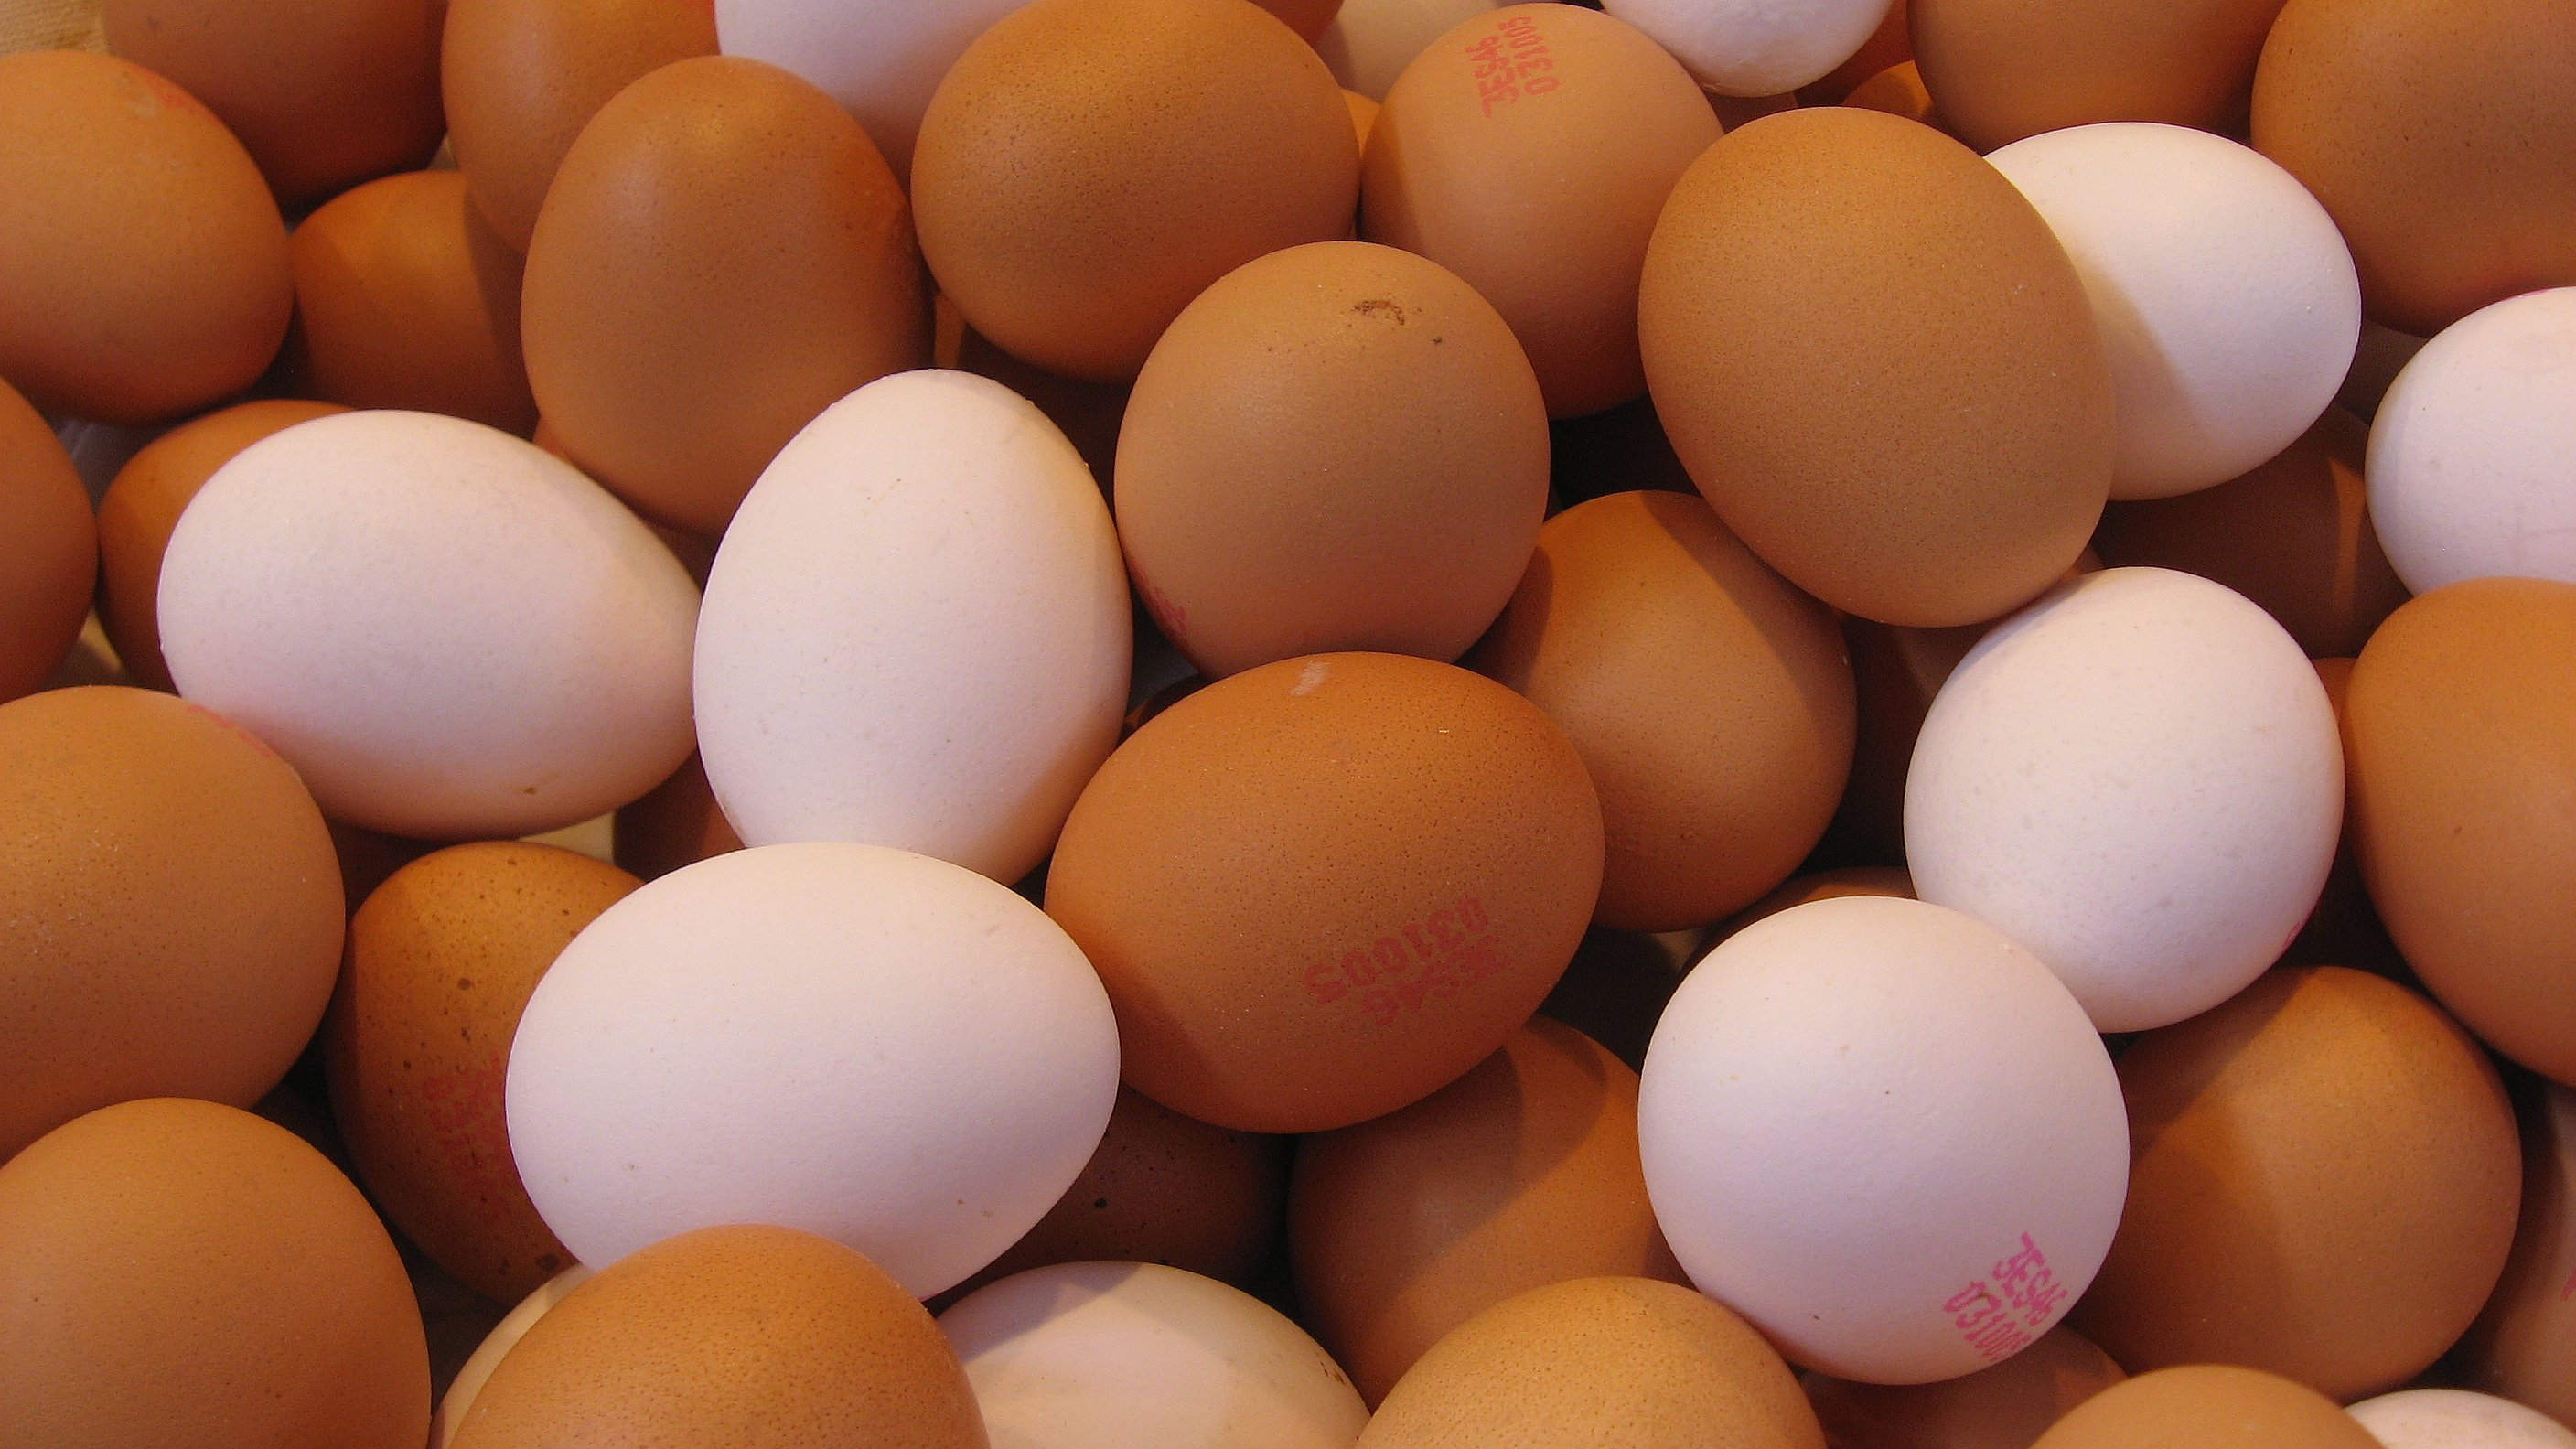 Gobs of eggs